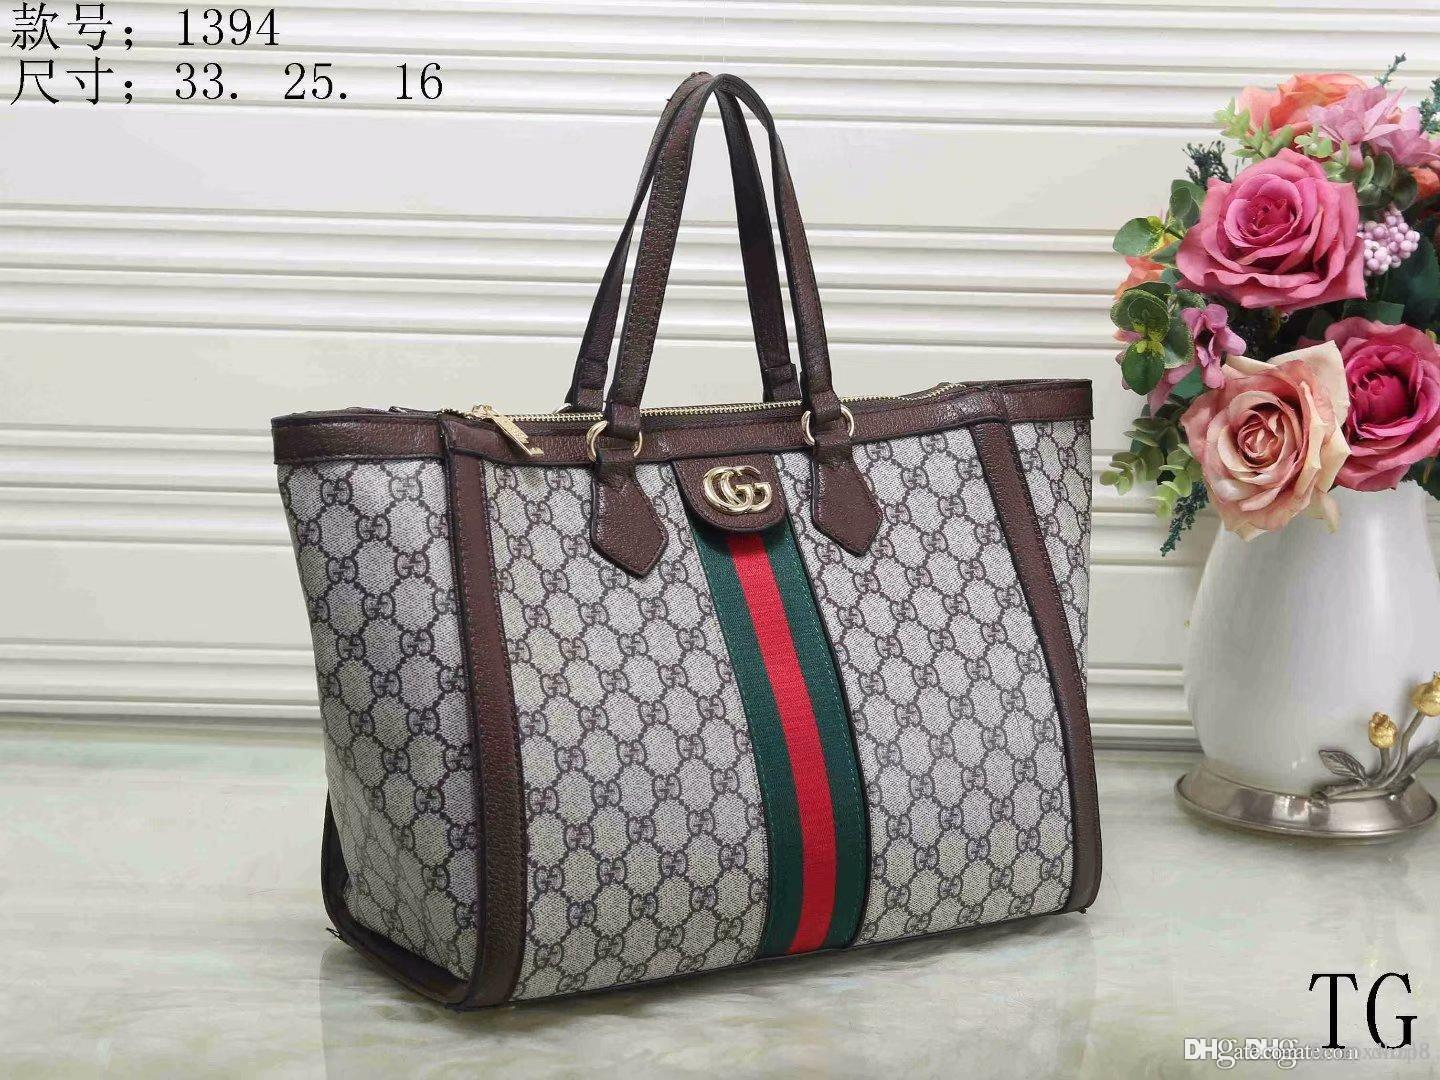 2018 G Zwj Ucci Neverfull Handbags Women Michael Composite Bags Kor Tote  Fashion Shoulder Bags Tote Satchel Gg Purse Cluttch Aaa+ Lz G1394 From  Fourpxworld, ... 47a48c543e